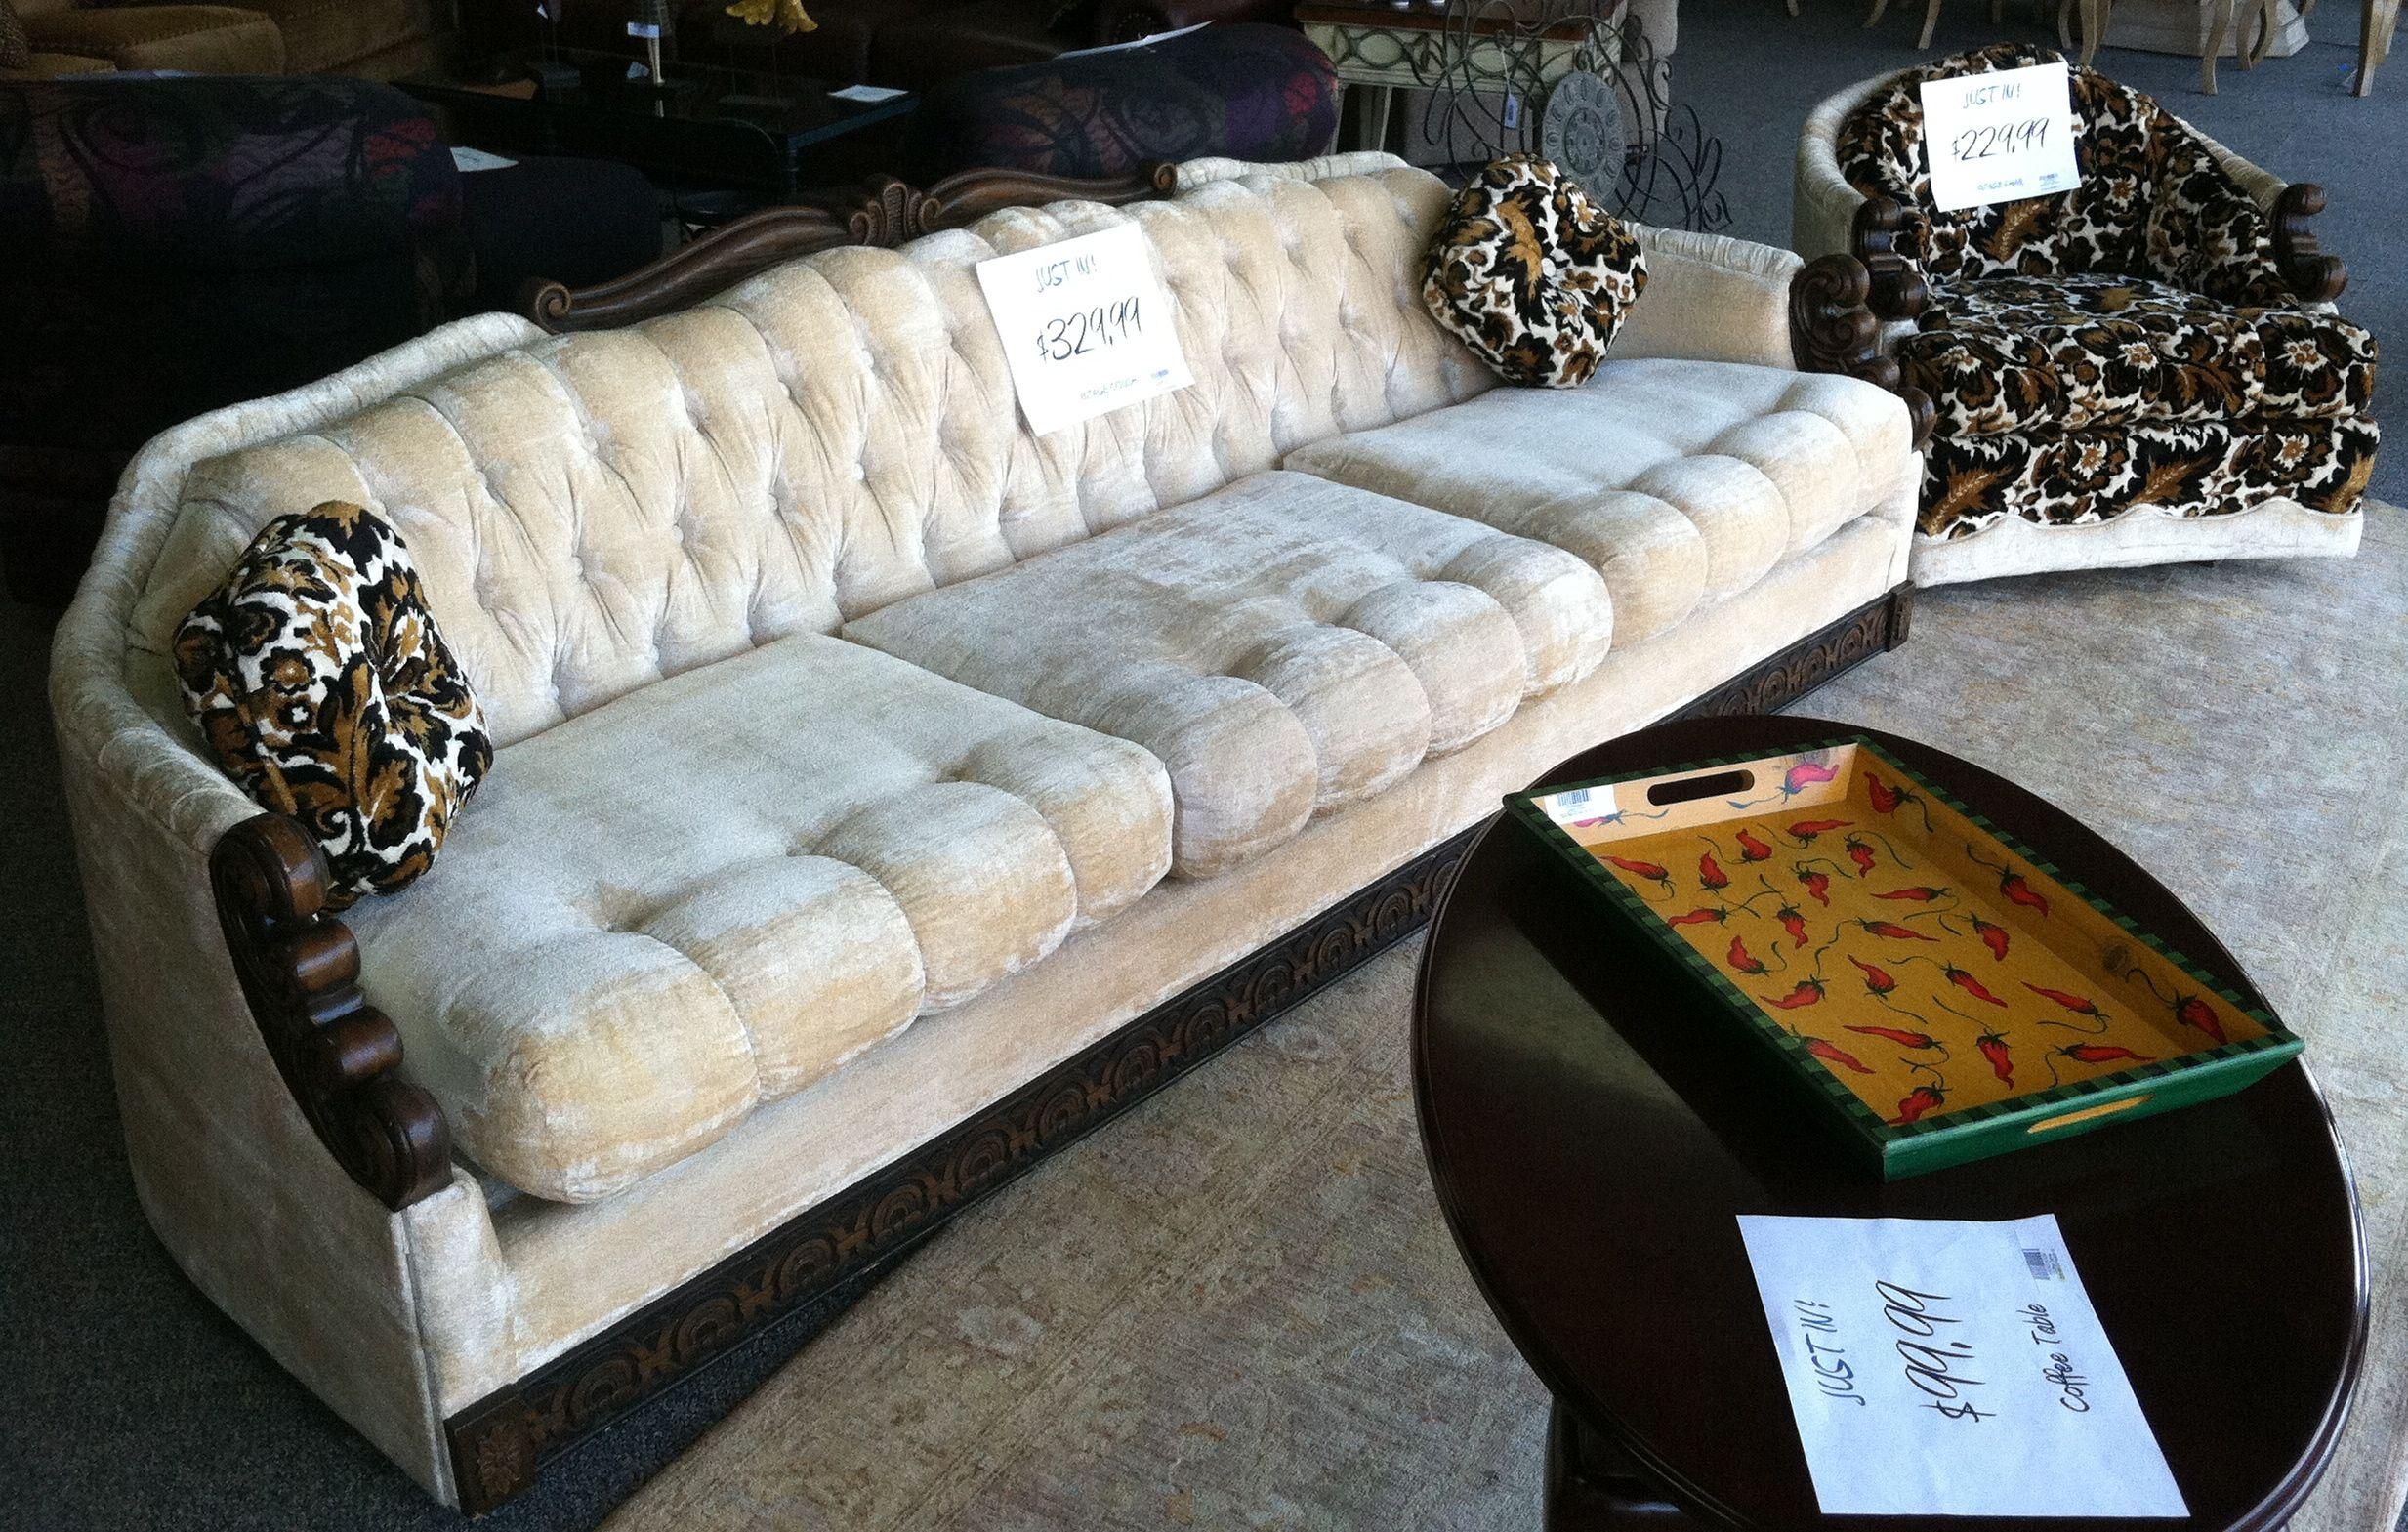 Phoenix Scottsdale Consignment Used Furniture Consignment Furniture Used Furniture Stores Vintage Couch Furniture Store